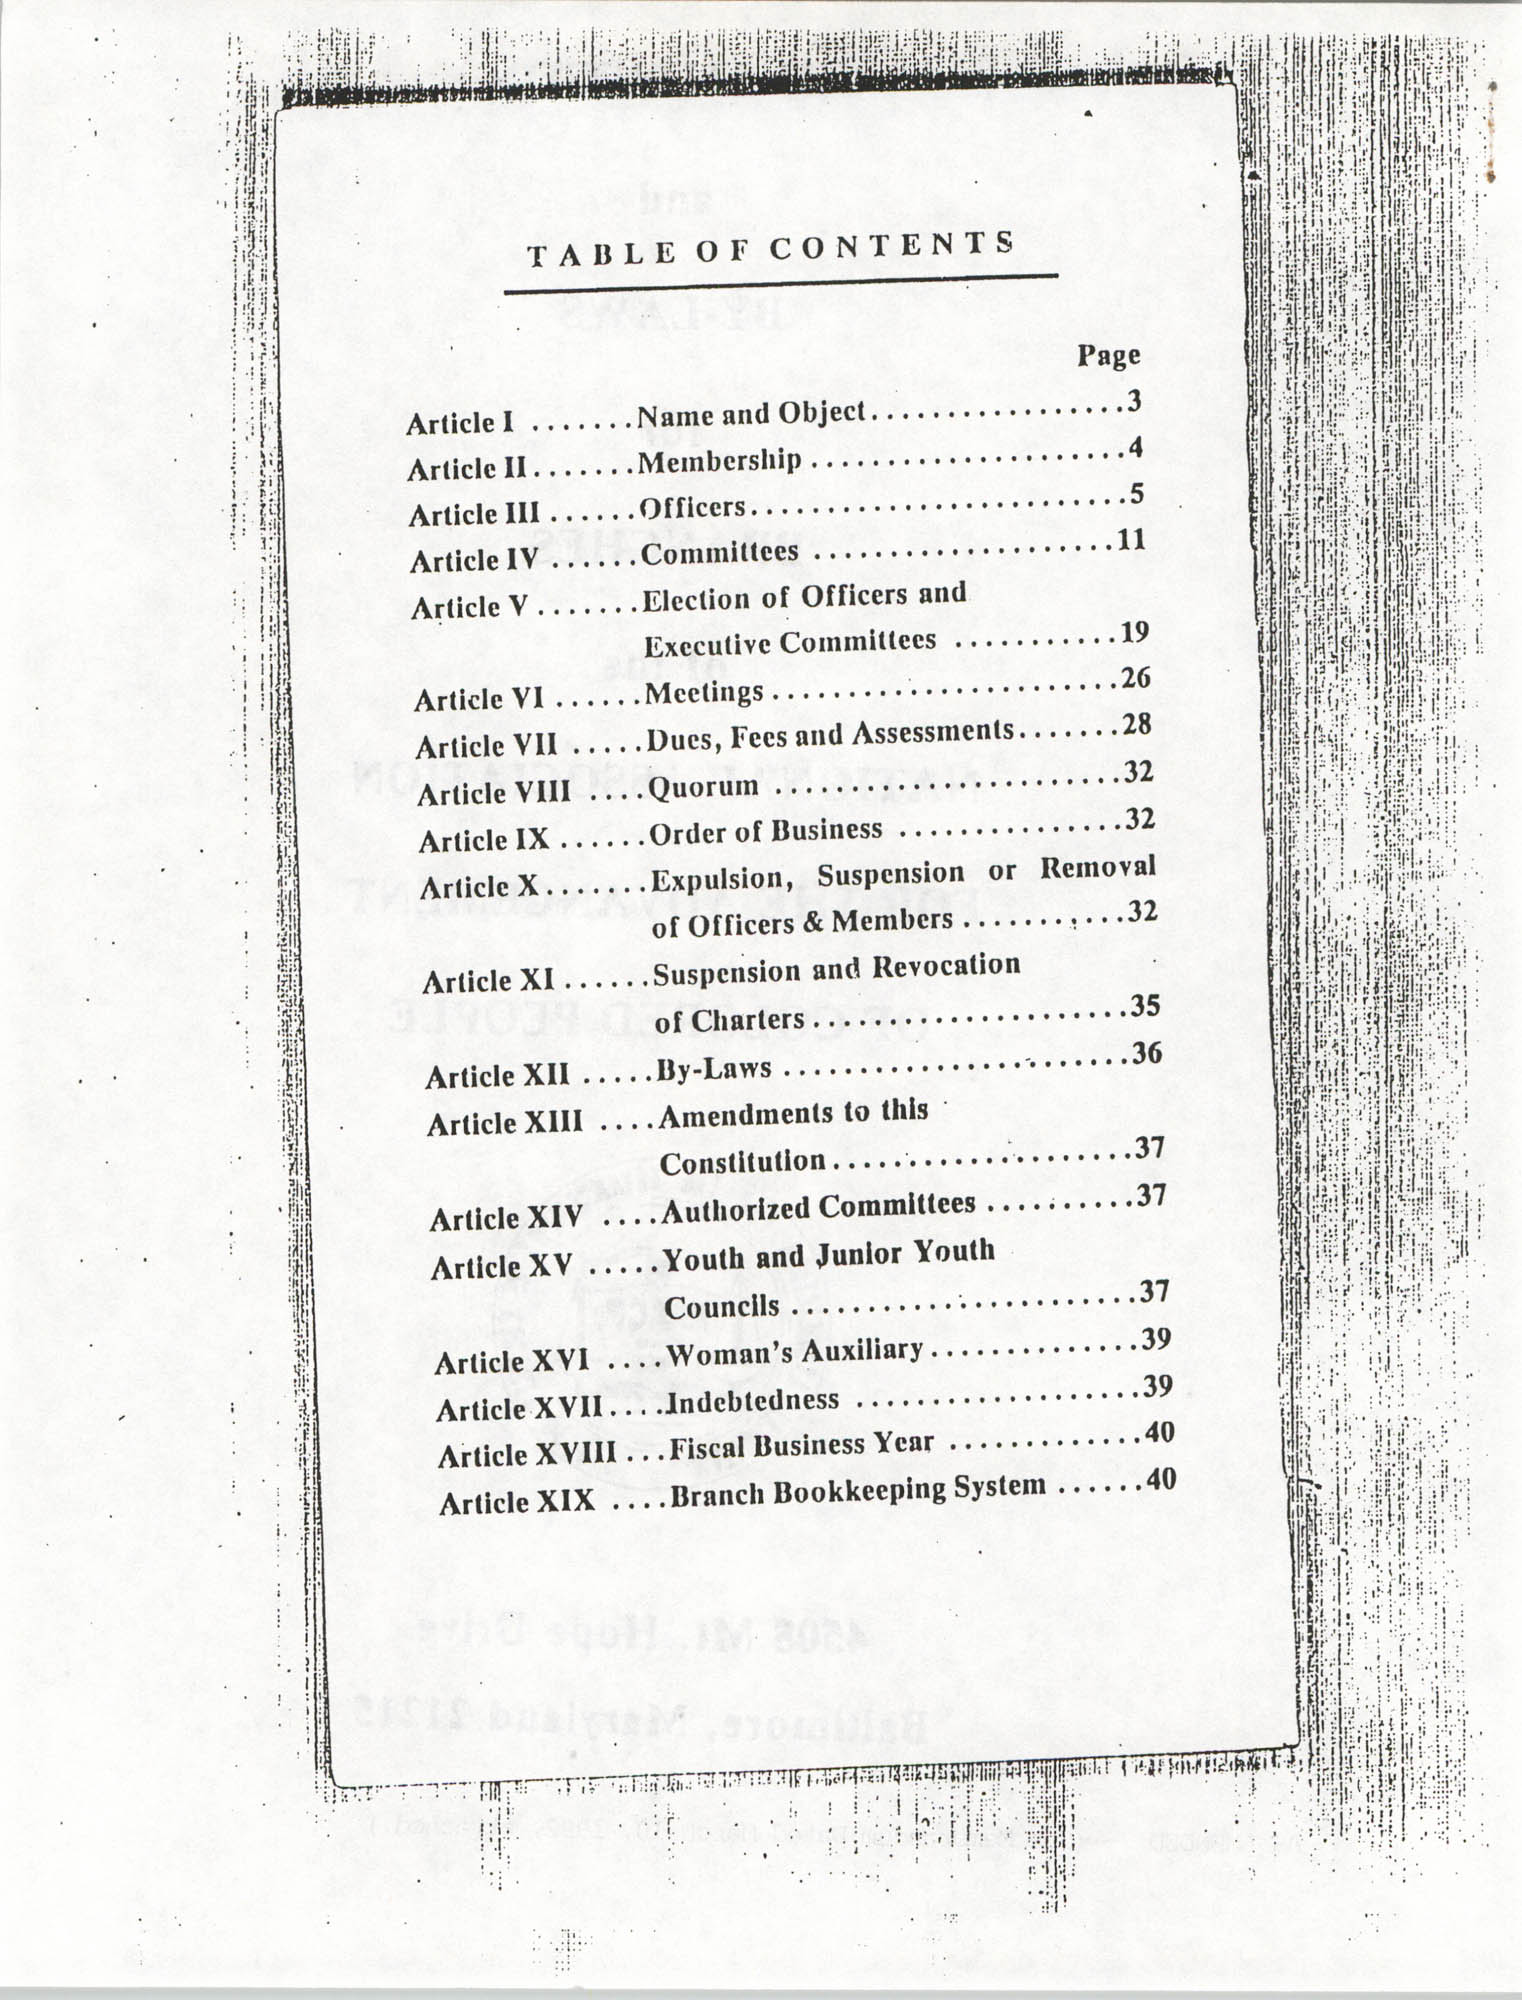 Constitution and By-Laws for Branches of the NAACP, March 1992, Table of Contents